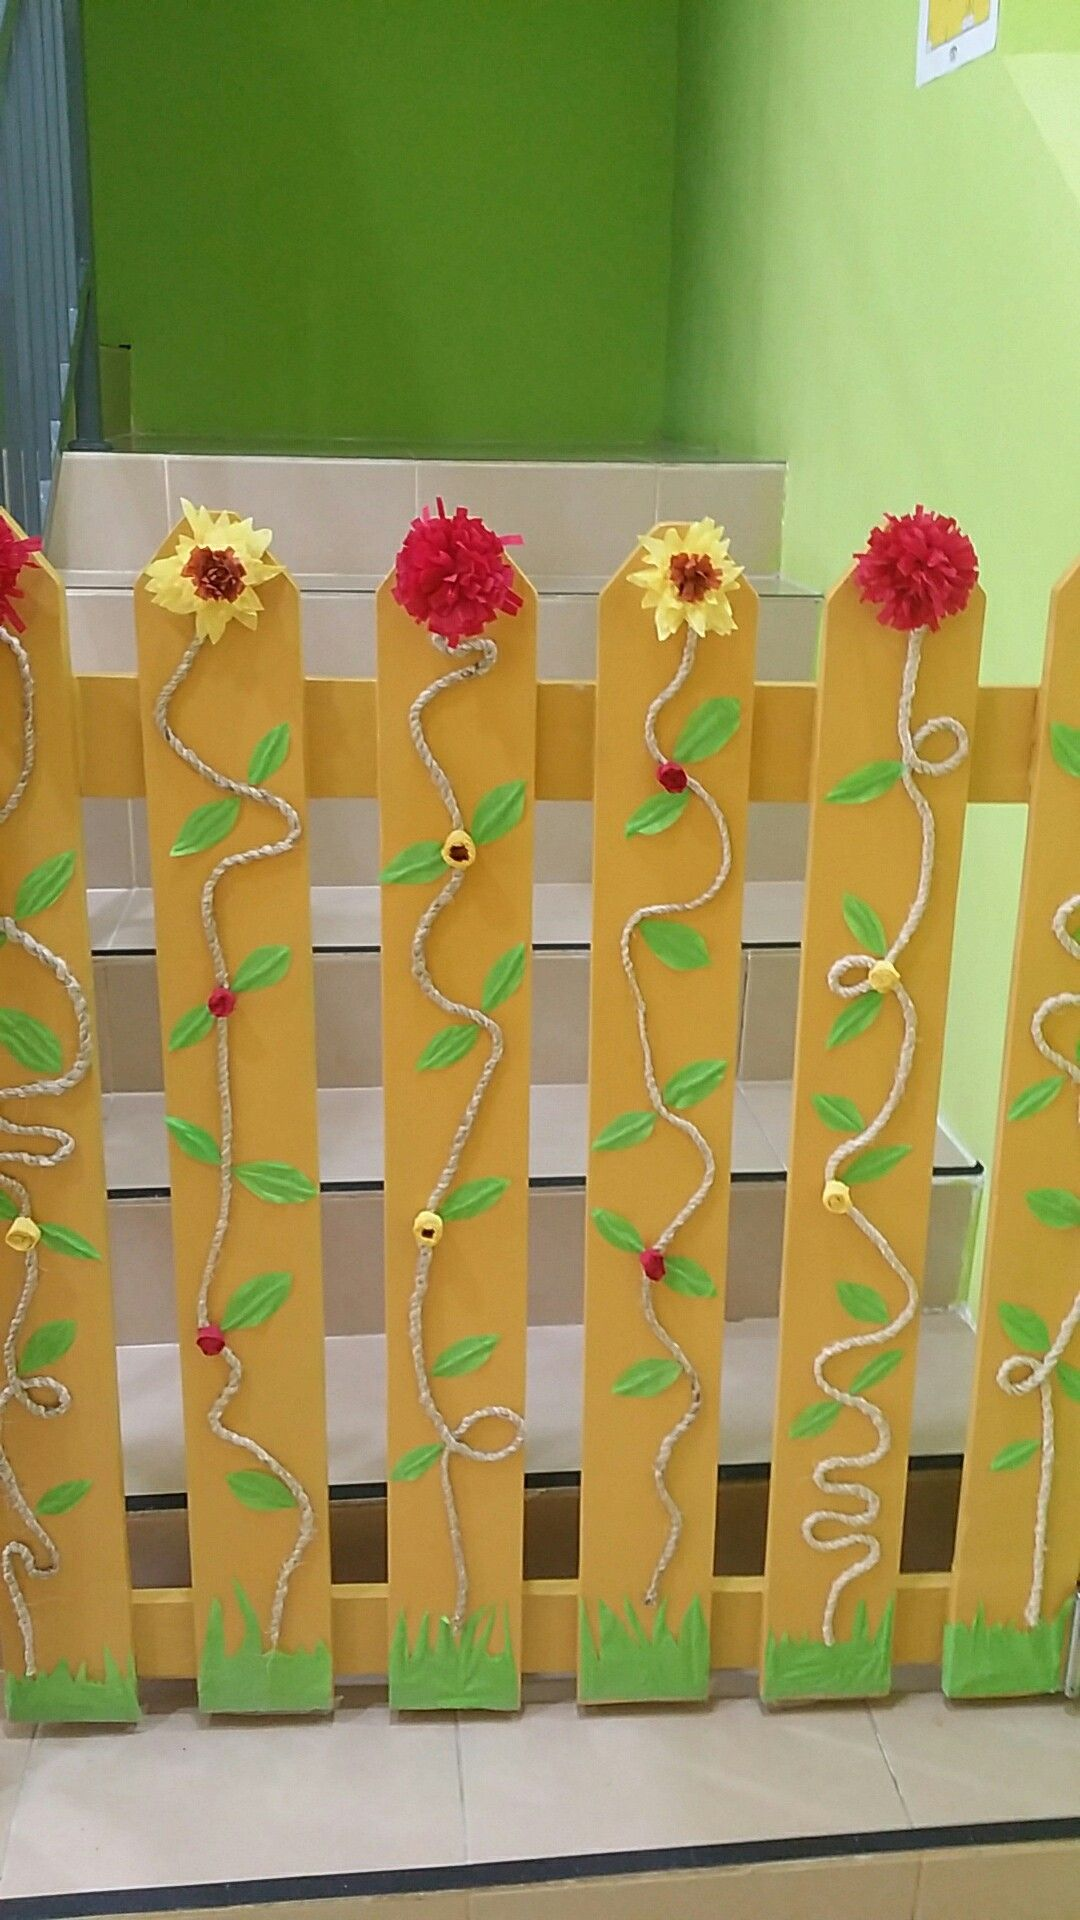 Flower decorations on wooden gates. Materials: Rope, Crepe Paper ...